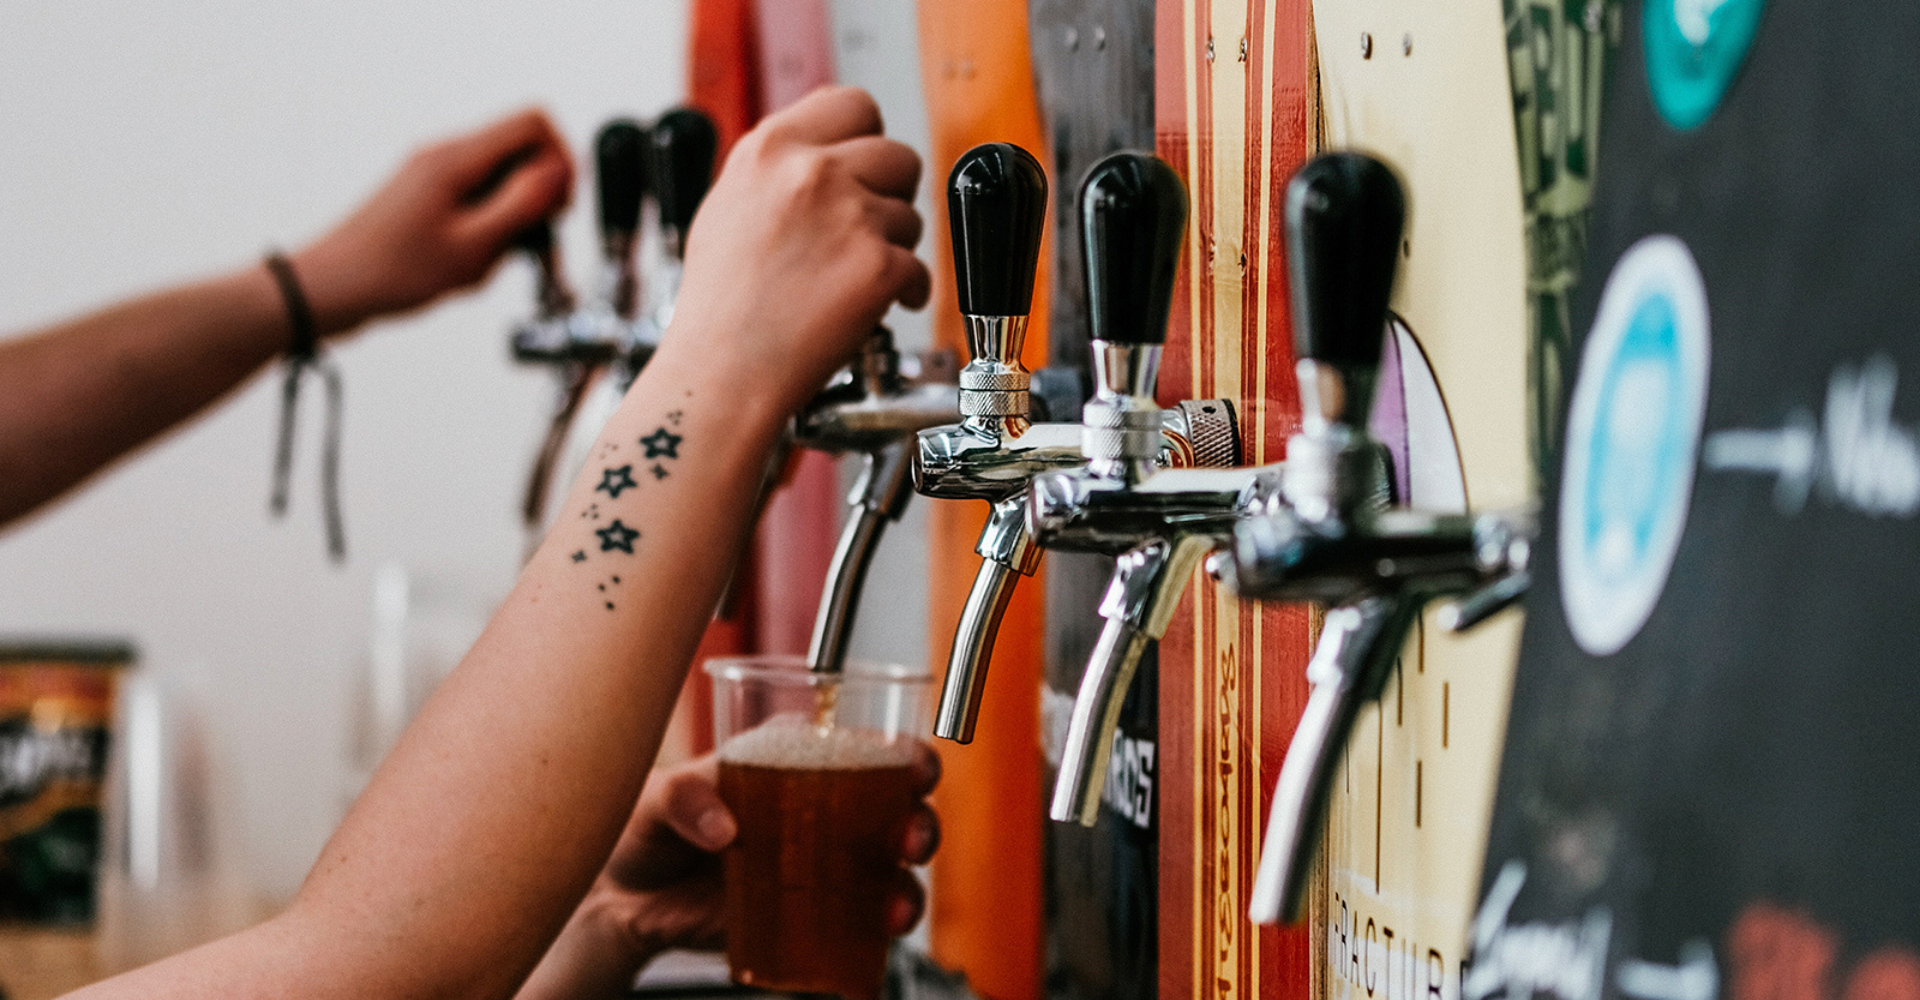 Crowdfunder: The home of craft beer and brewery crowdfunding